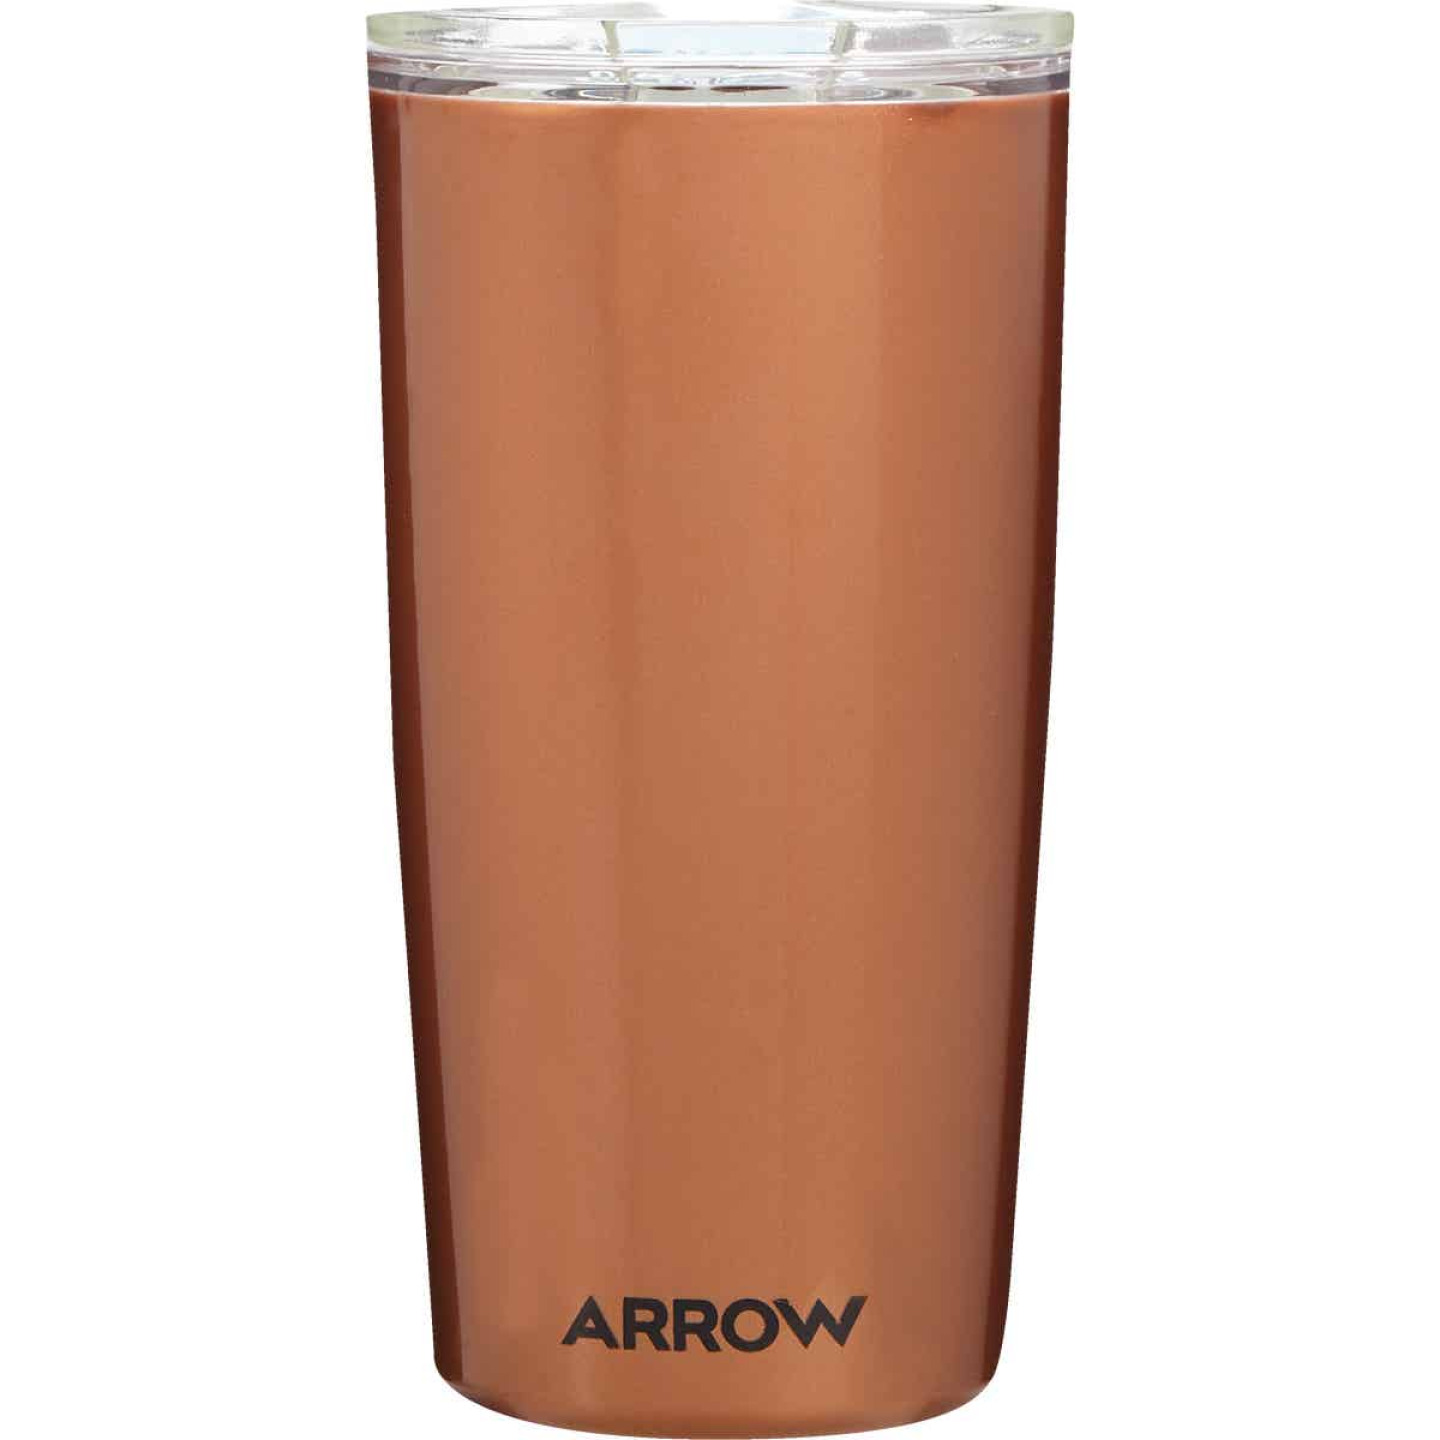 Arrow 18 Oz. Insulated Tumbler with Lid Image 2